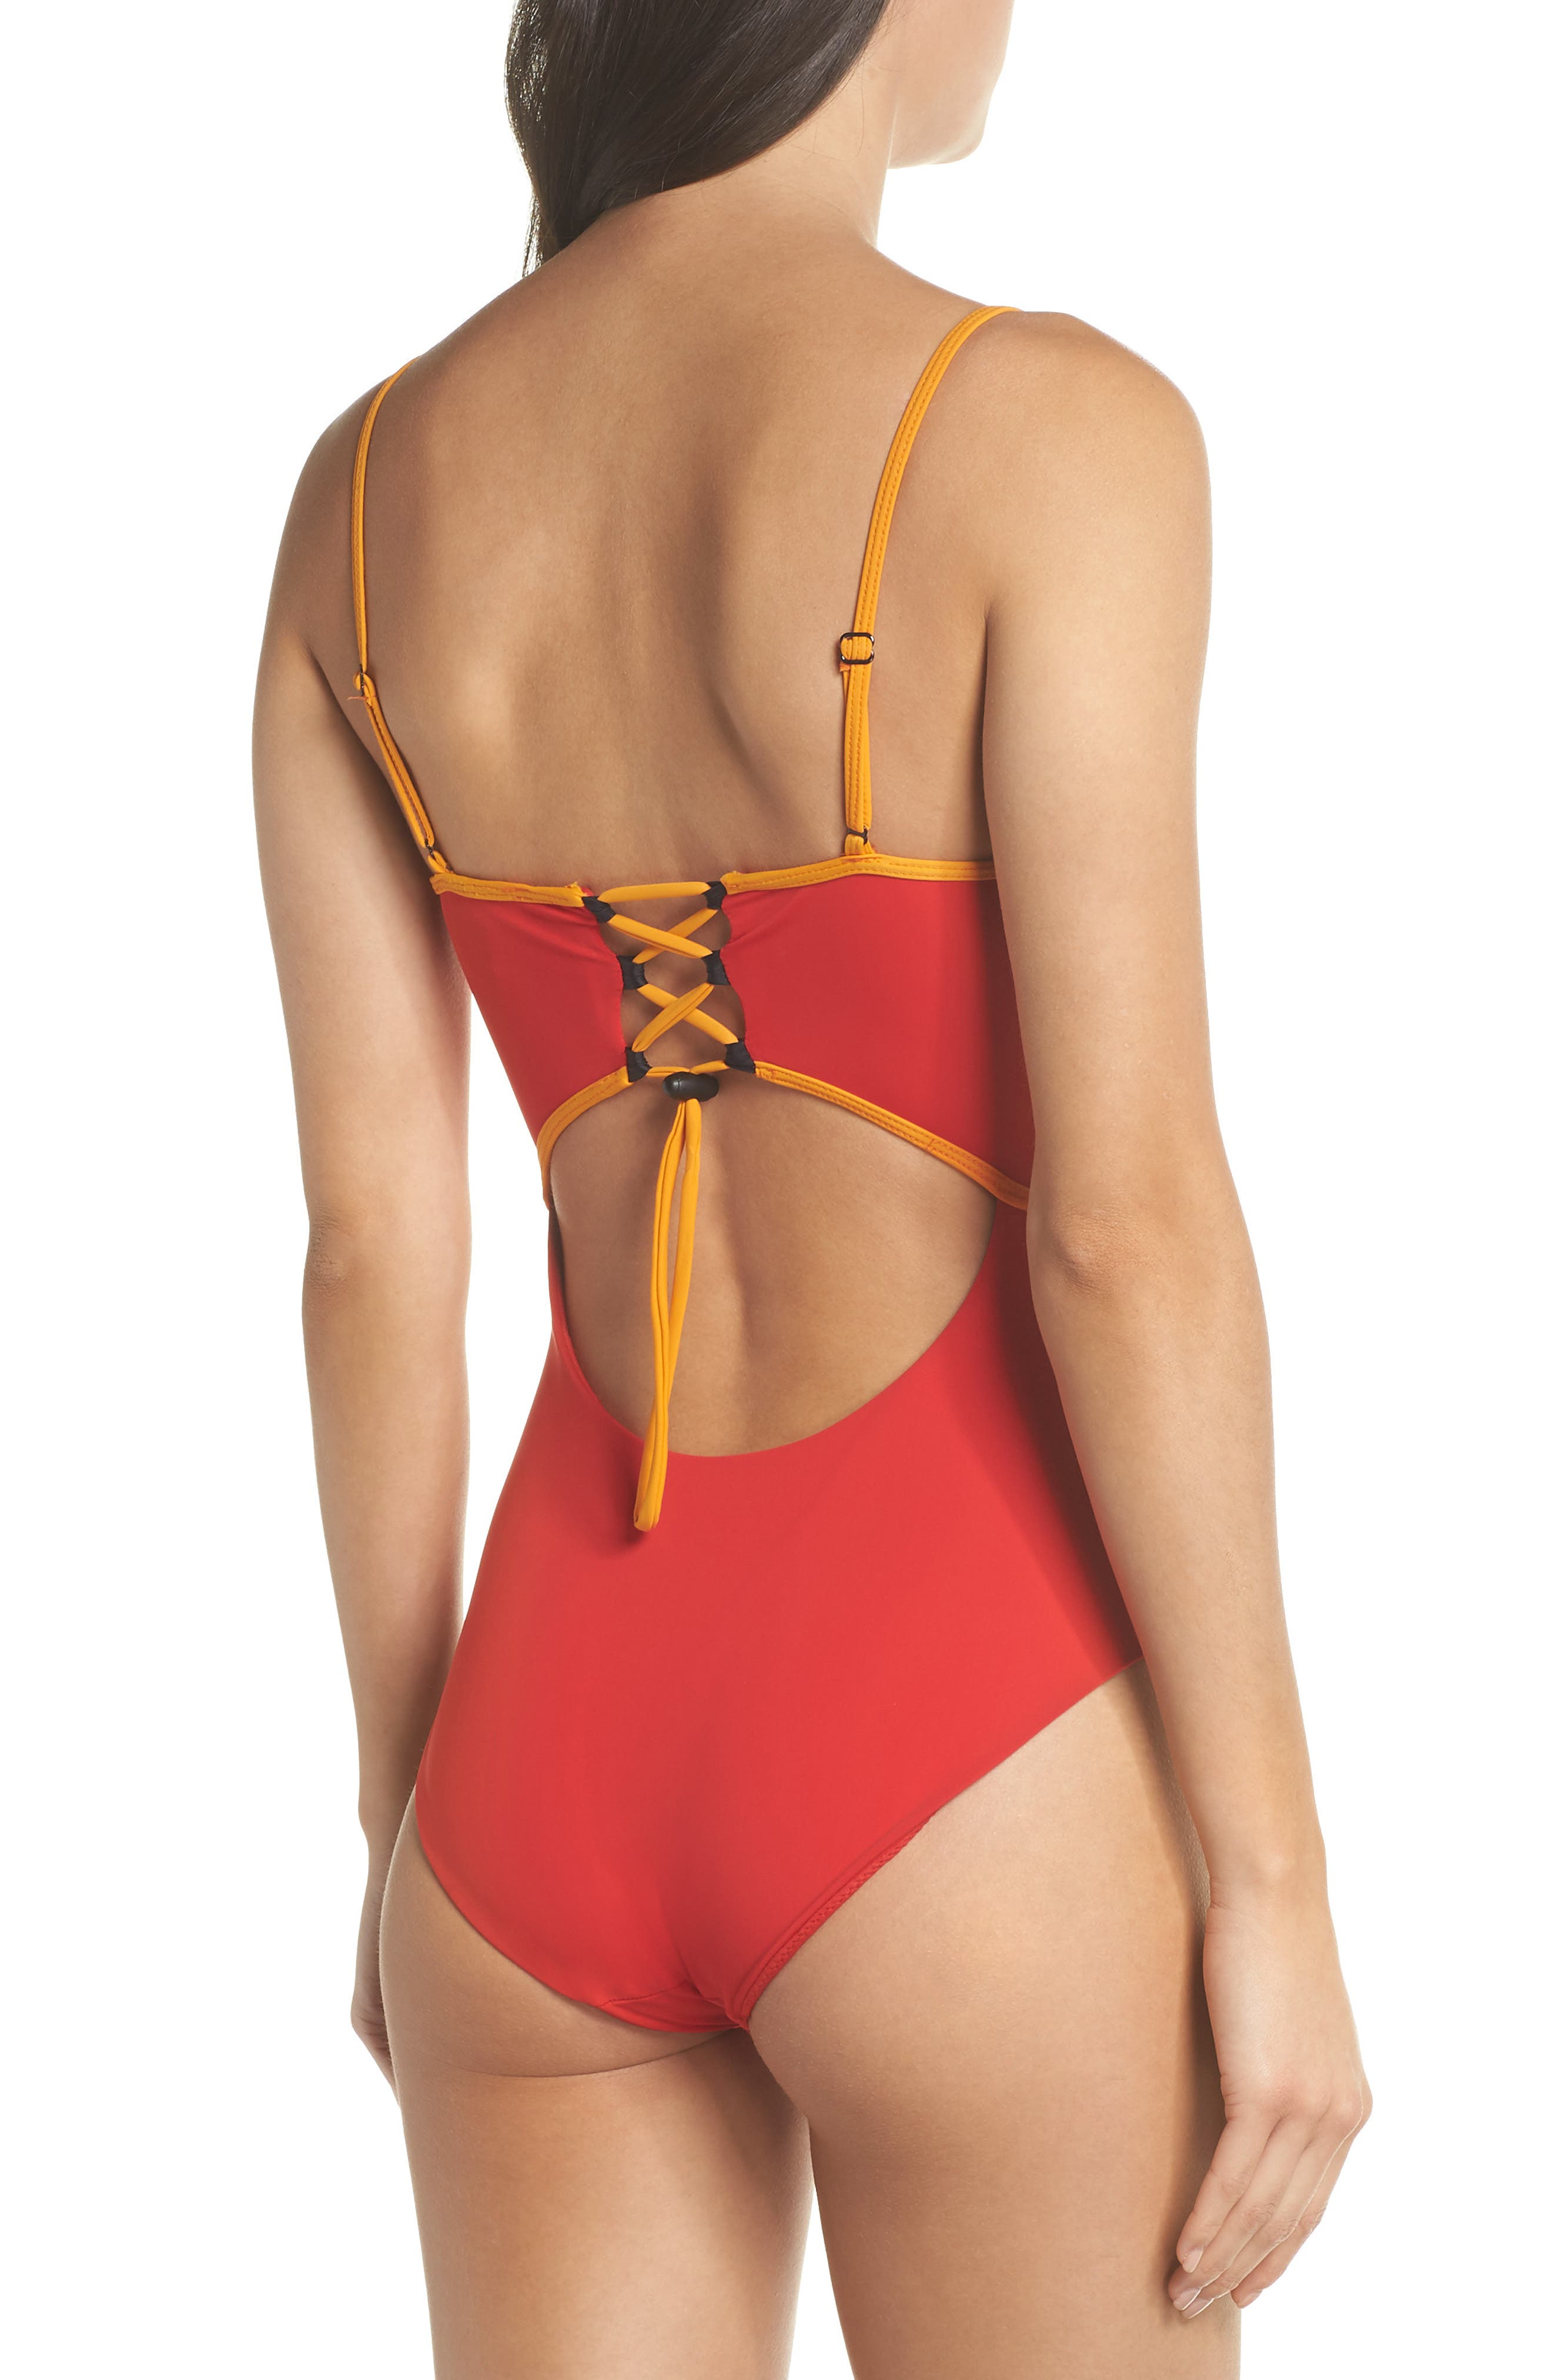 Barrel One-Piece Swimsuit,                             Alternate thumbnail 2, color,                             Red/ Orange